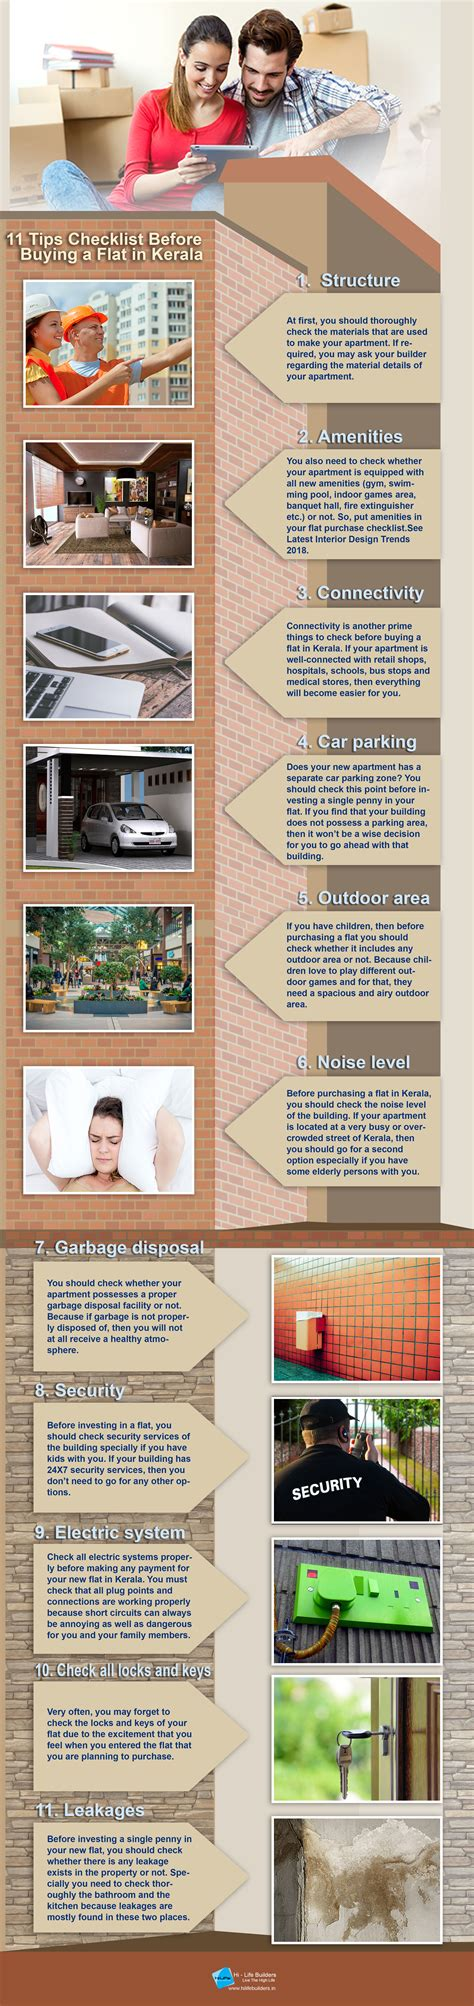 what to check when buying a flat 11 tips checklist before buying a flat in kerala